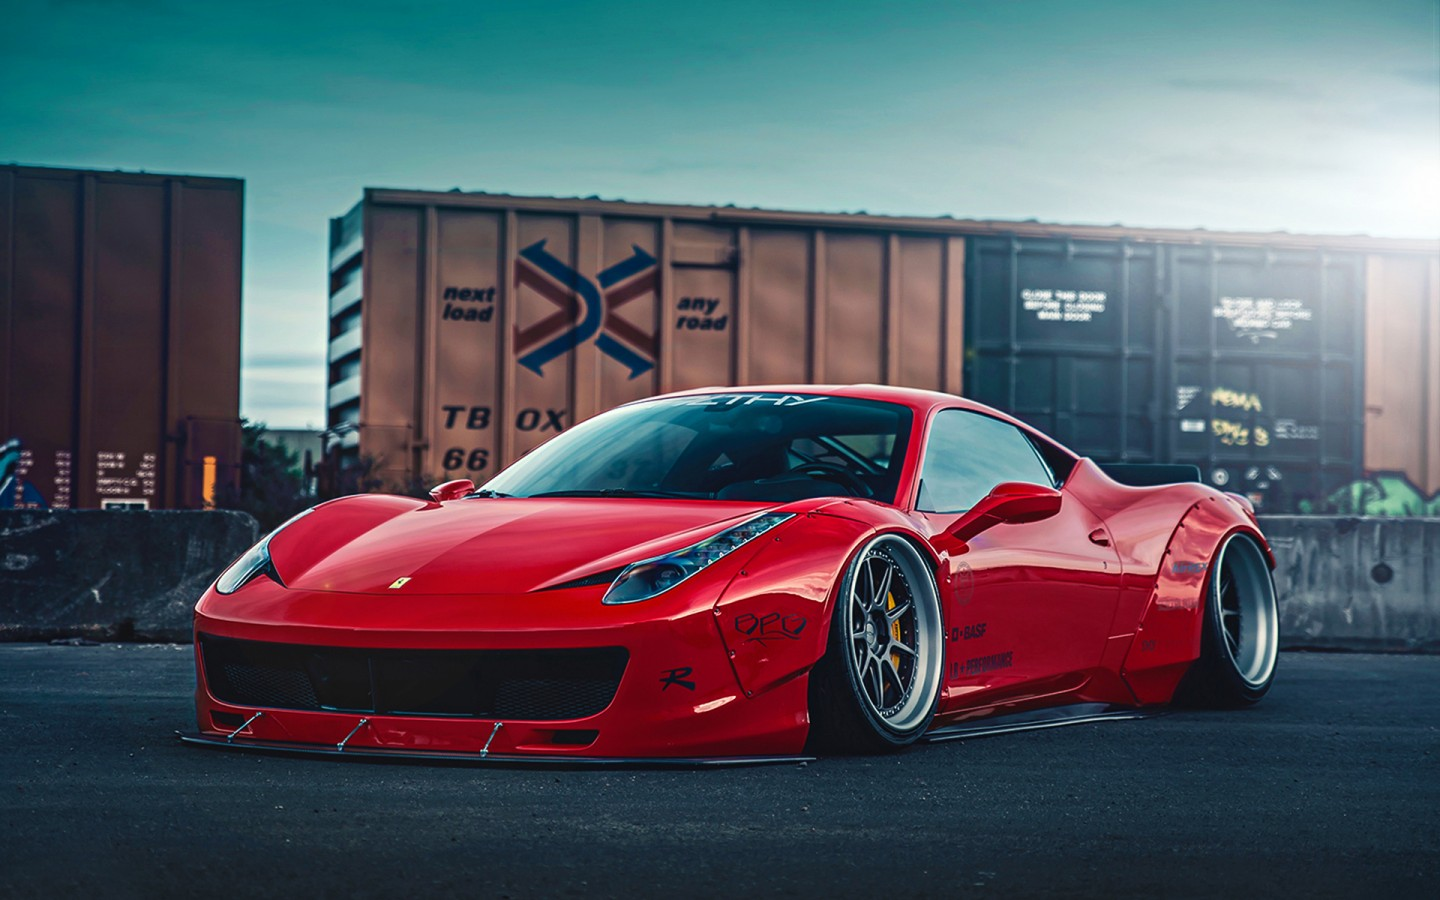 ferrari 458 liberty walk 2 wallpaper hd car wallpapers id 5687. Black Bedroom Furniture Sets. Home Design Ideas